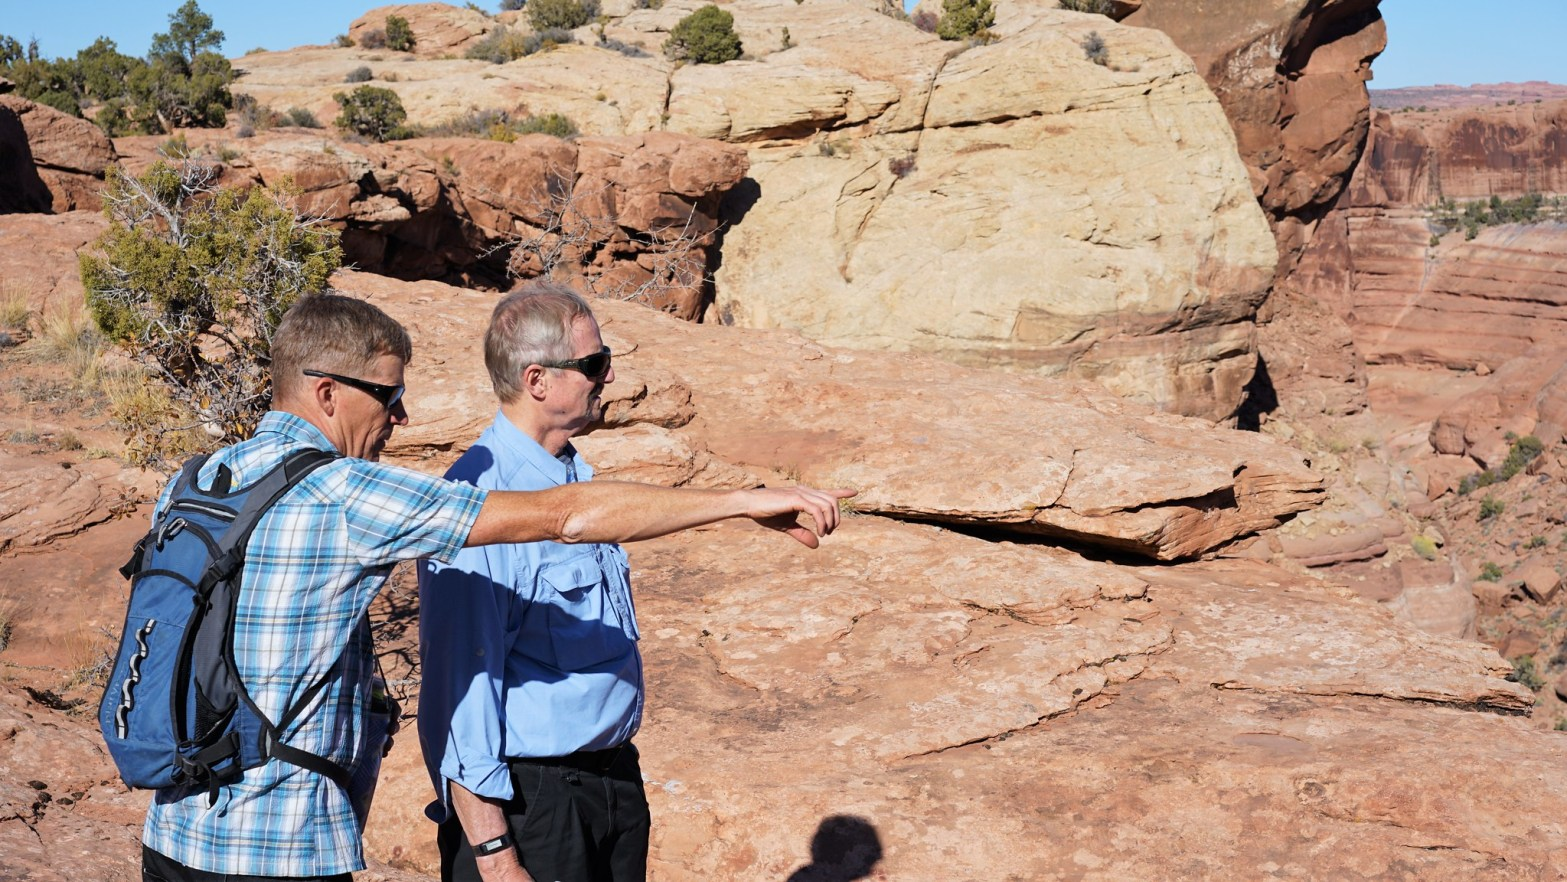 With Pendley ousted, BLM decisions come under new scrutiny